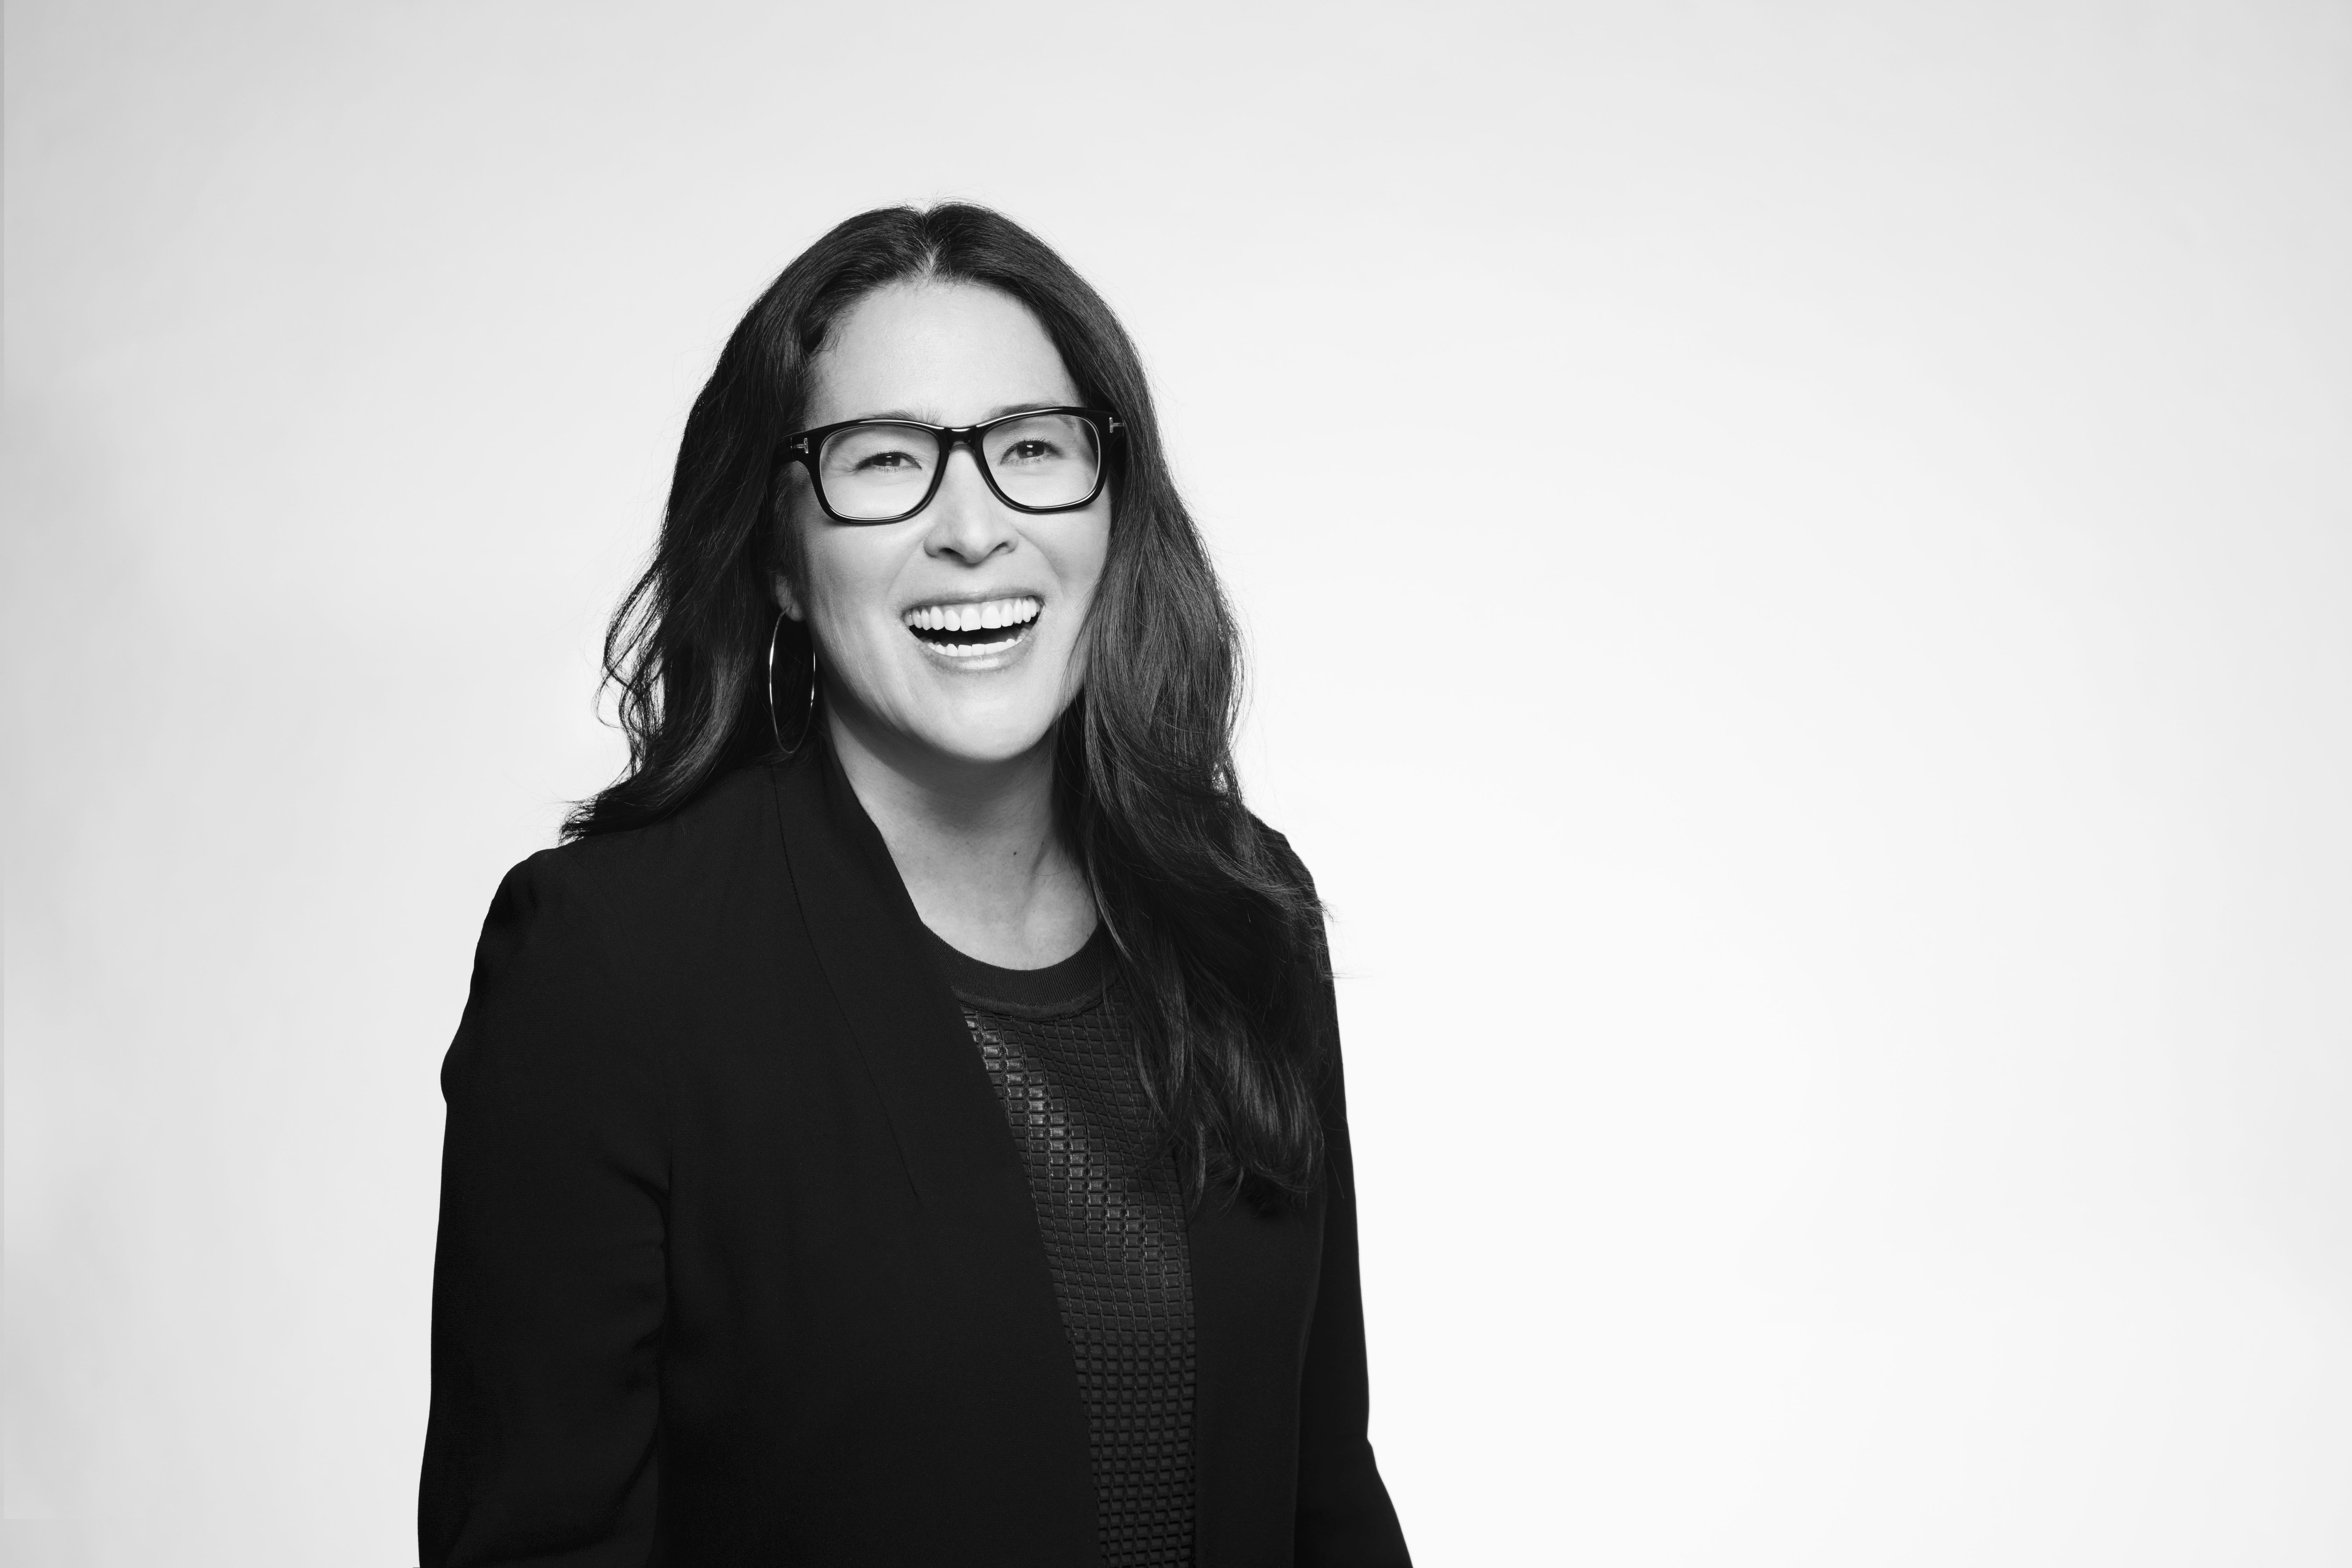 KBS Snags Ogilvy & Mather's Laura Forman as Executive Director of Brand Strategy | AgencySpy